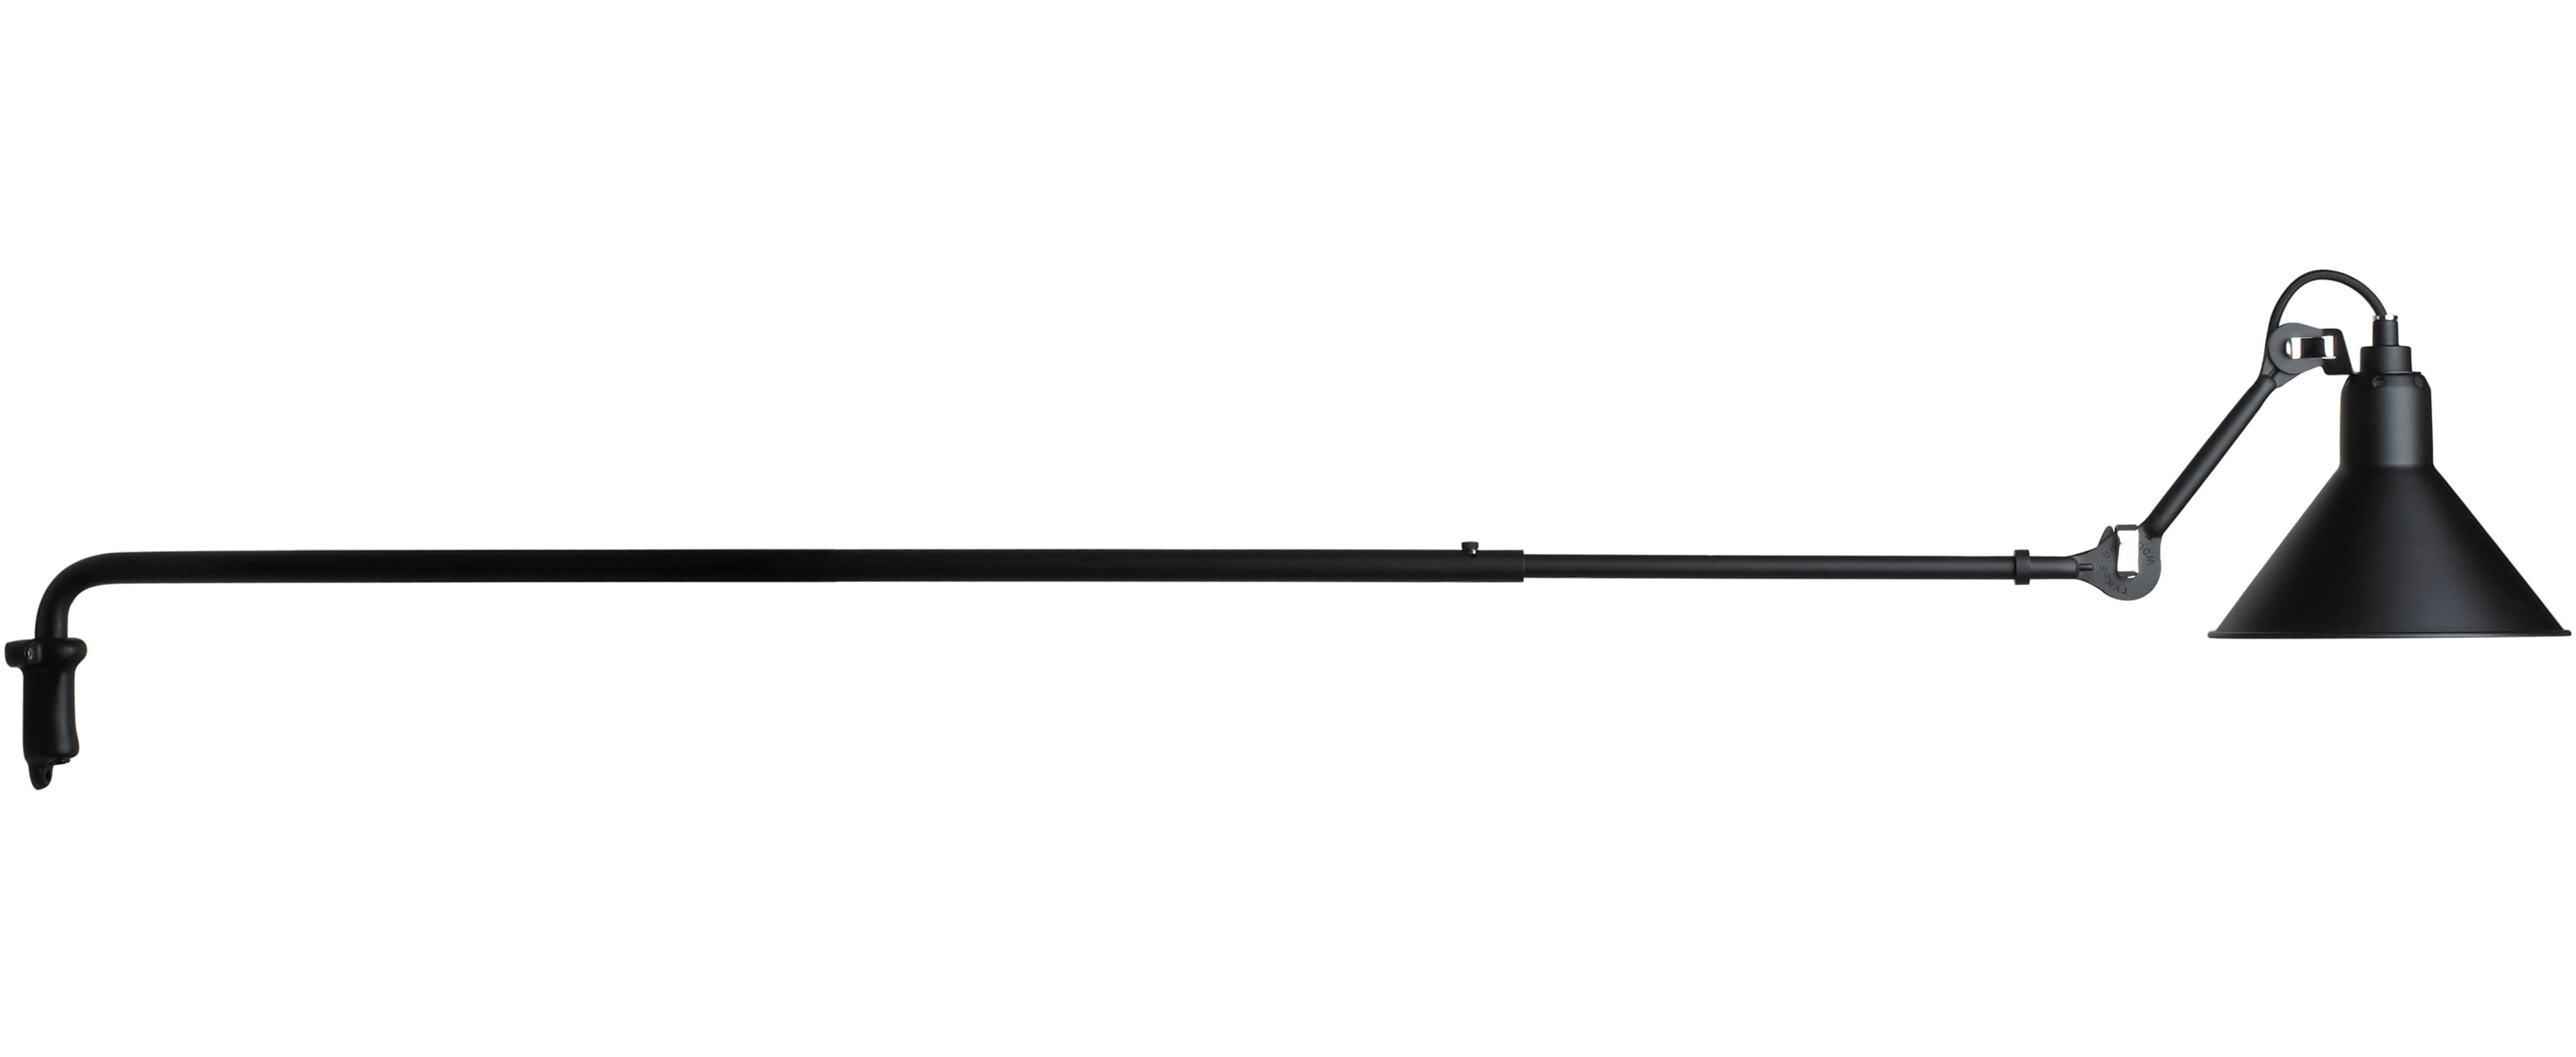 Lighting - Wall Lights - N°213 Wall light - With telescopic arm by DCW éditions - Lampes Gras - Black satin - Steel